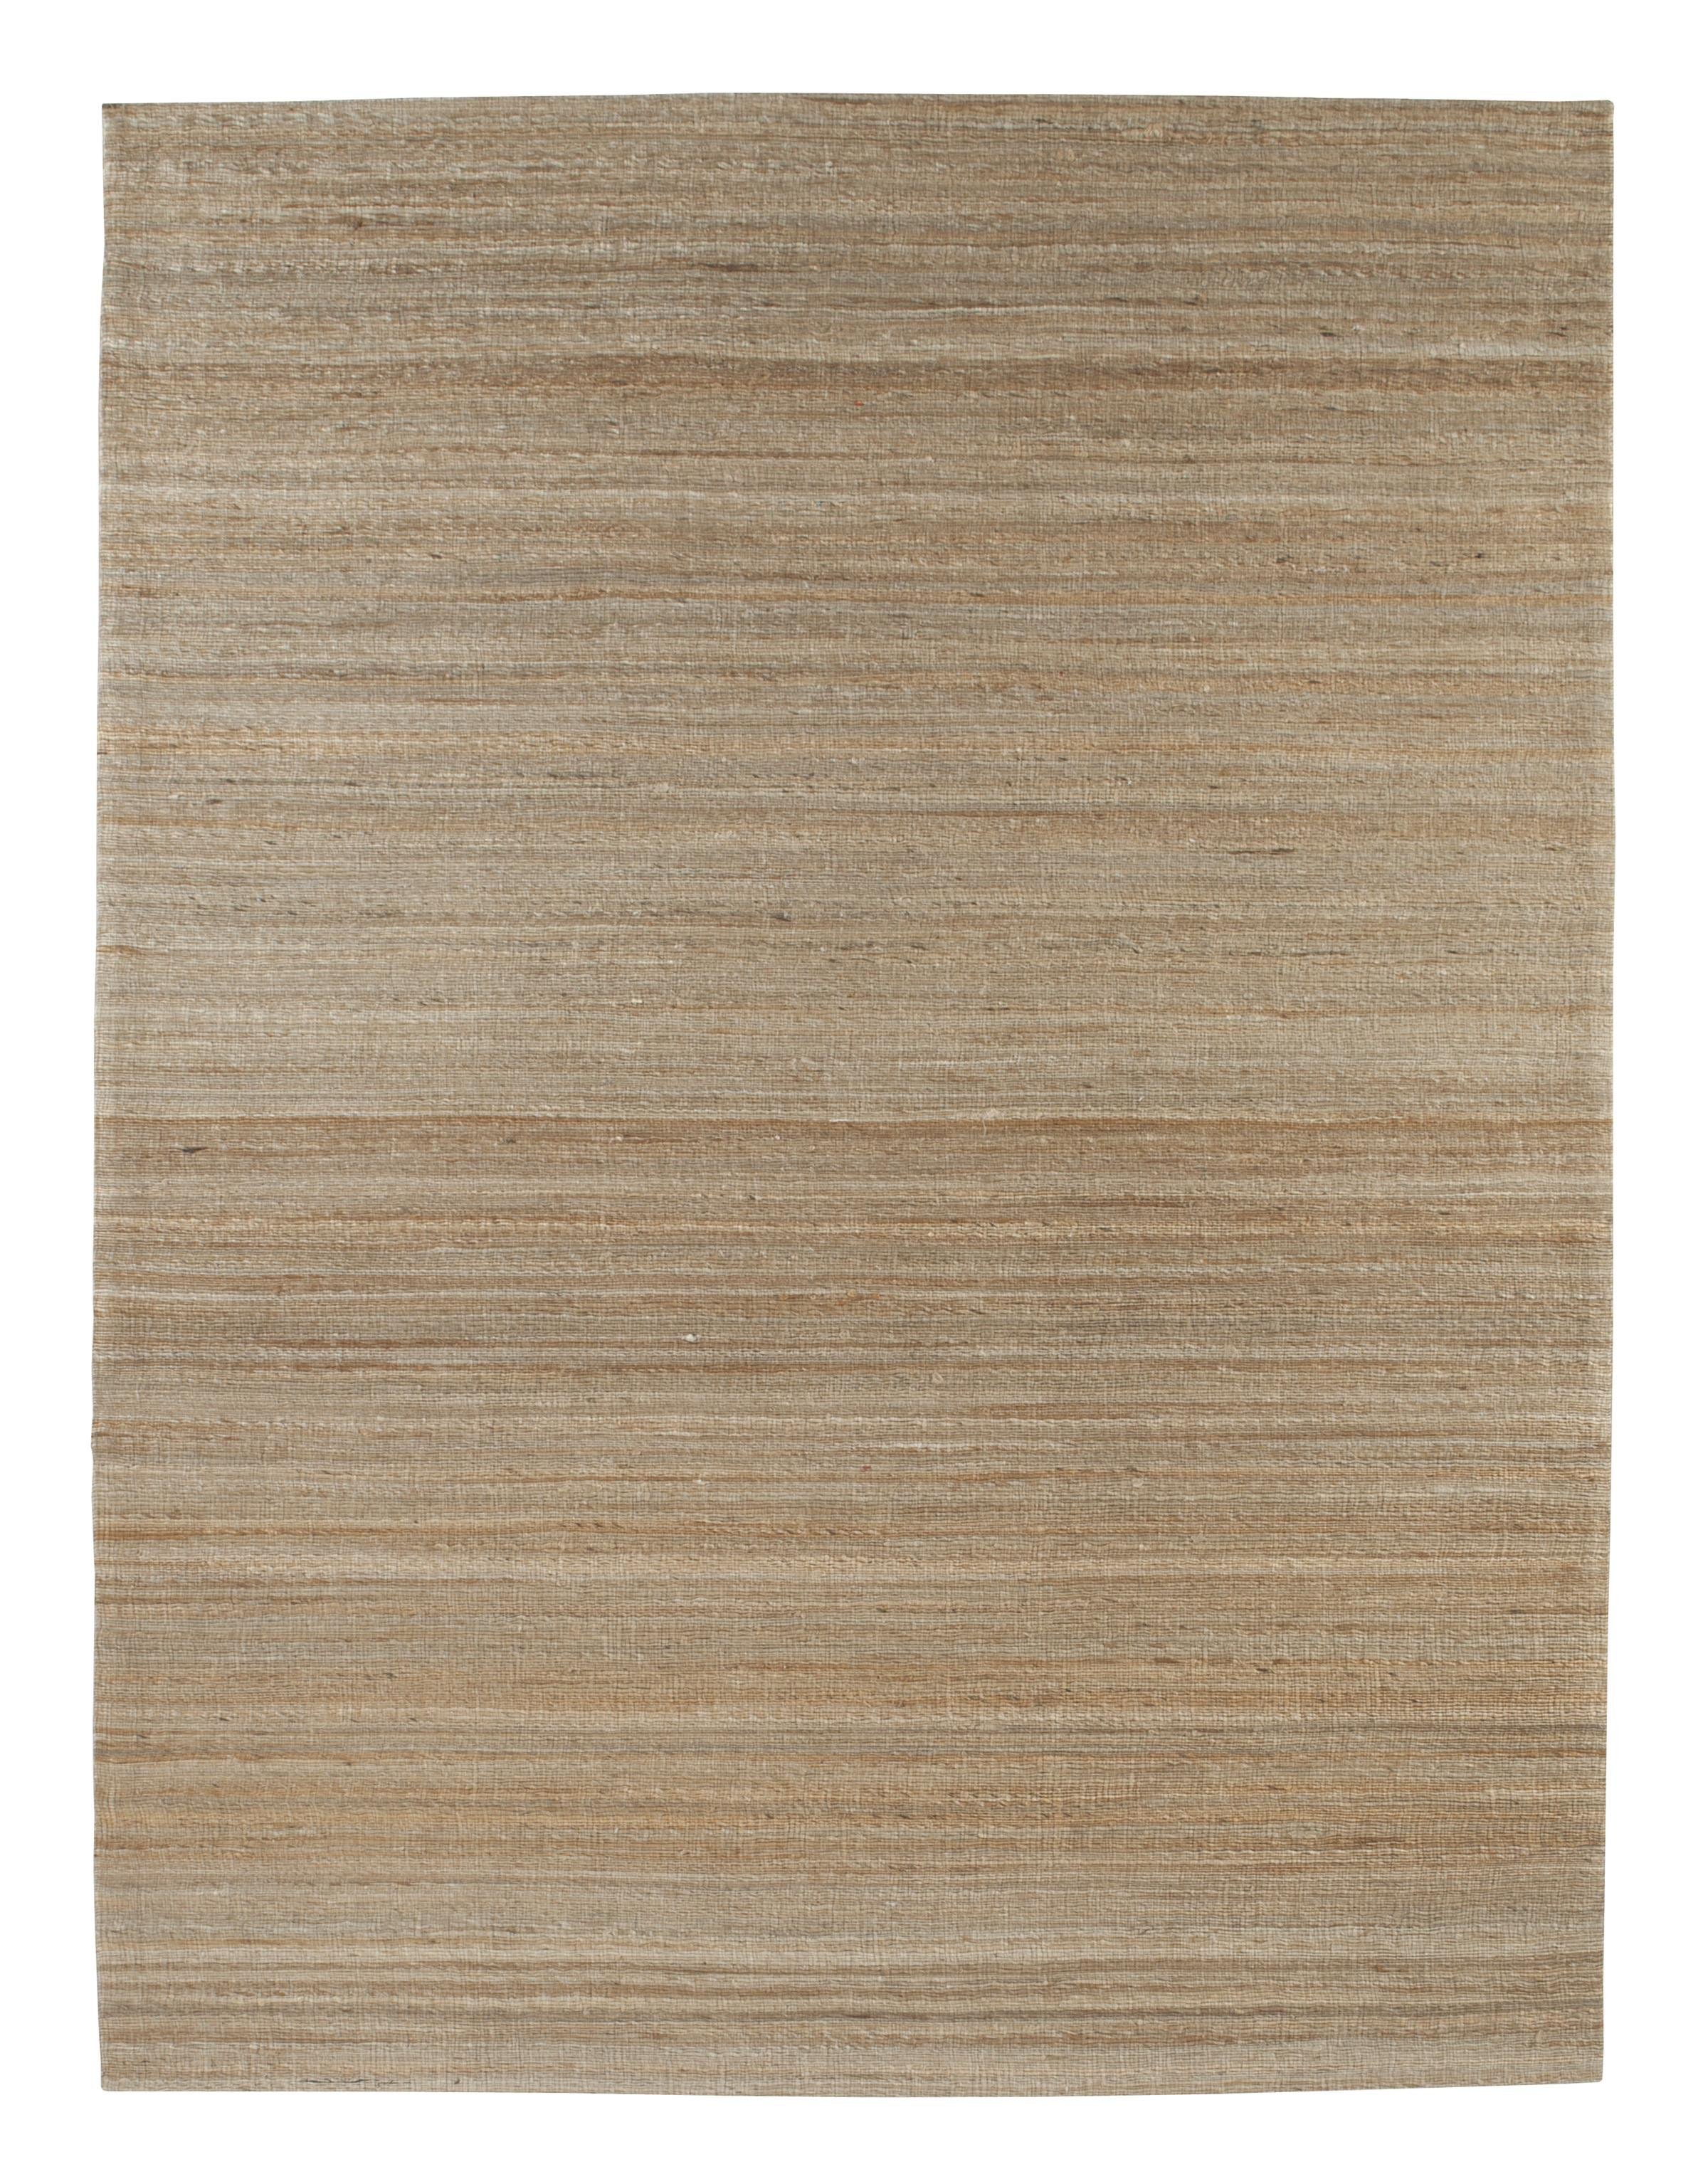 Signature Design by Ashley Casual Area Rugs Handwoven - Tan Medium Rug - Item Number: R401442